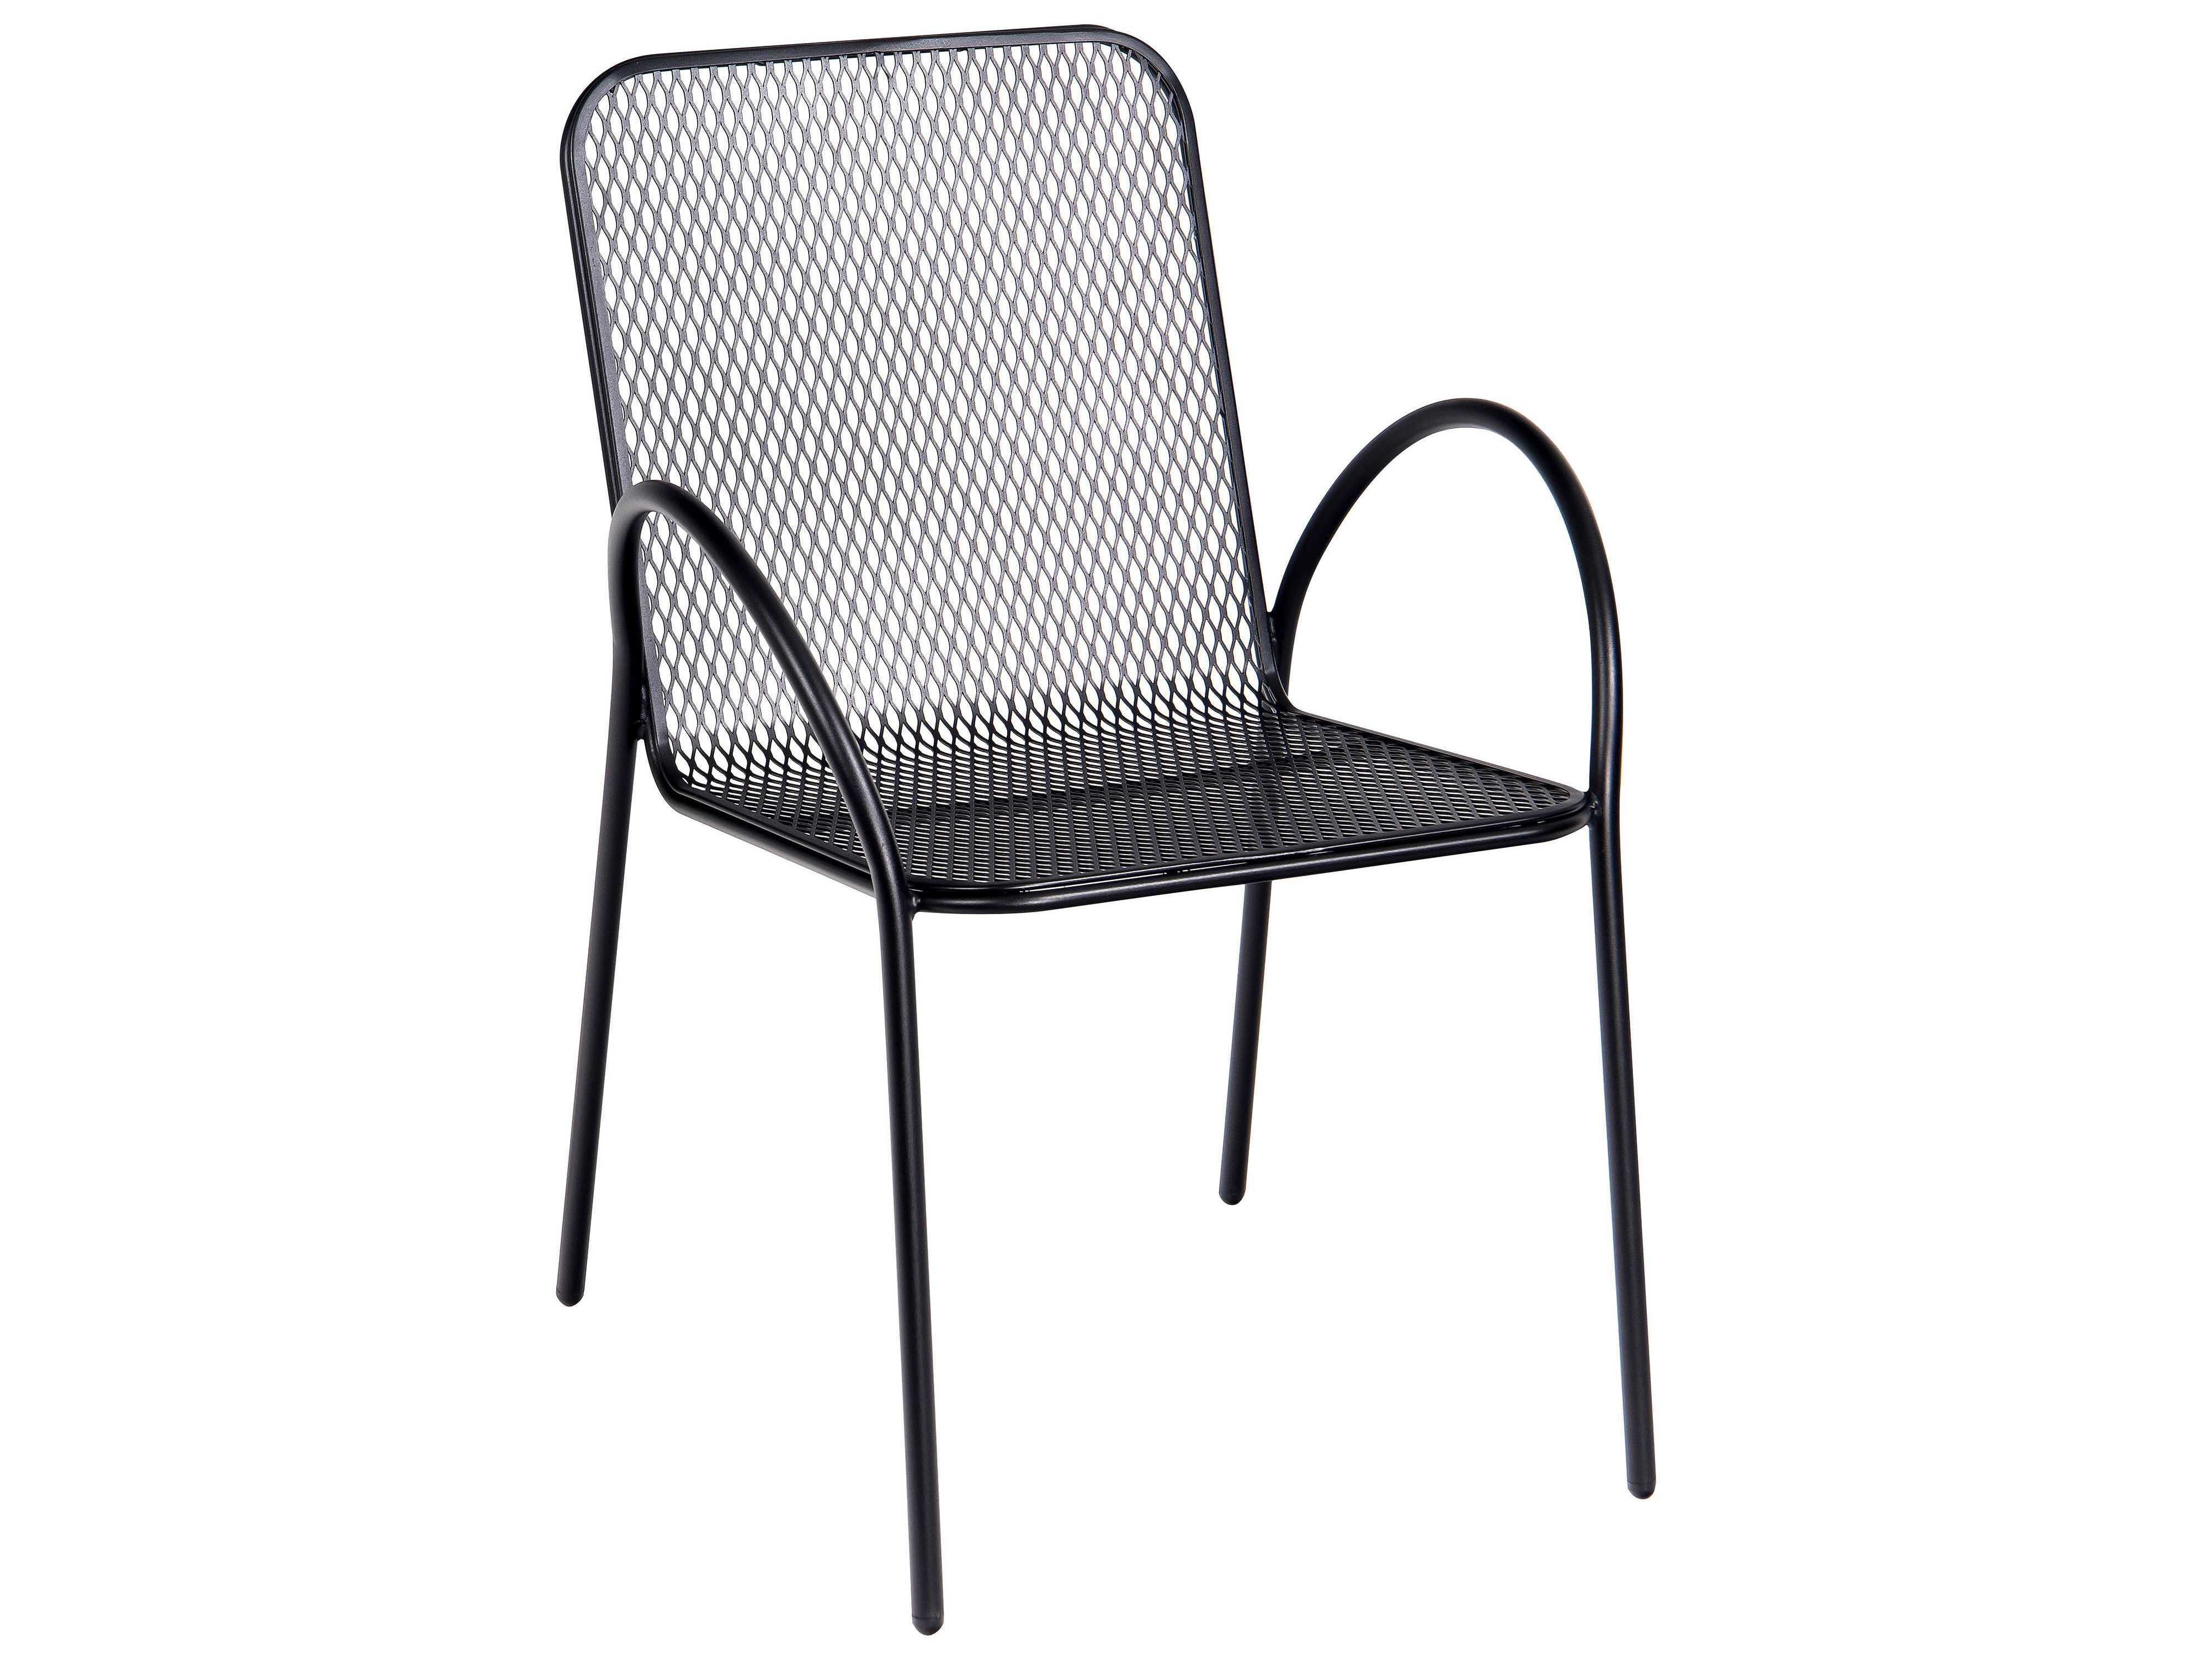 Wrought Iron Barrel Chair Outdoor Cushions: Woodard Avalon Wrought Iron Stackable Dining Arm Chair